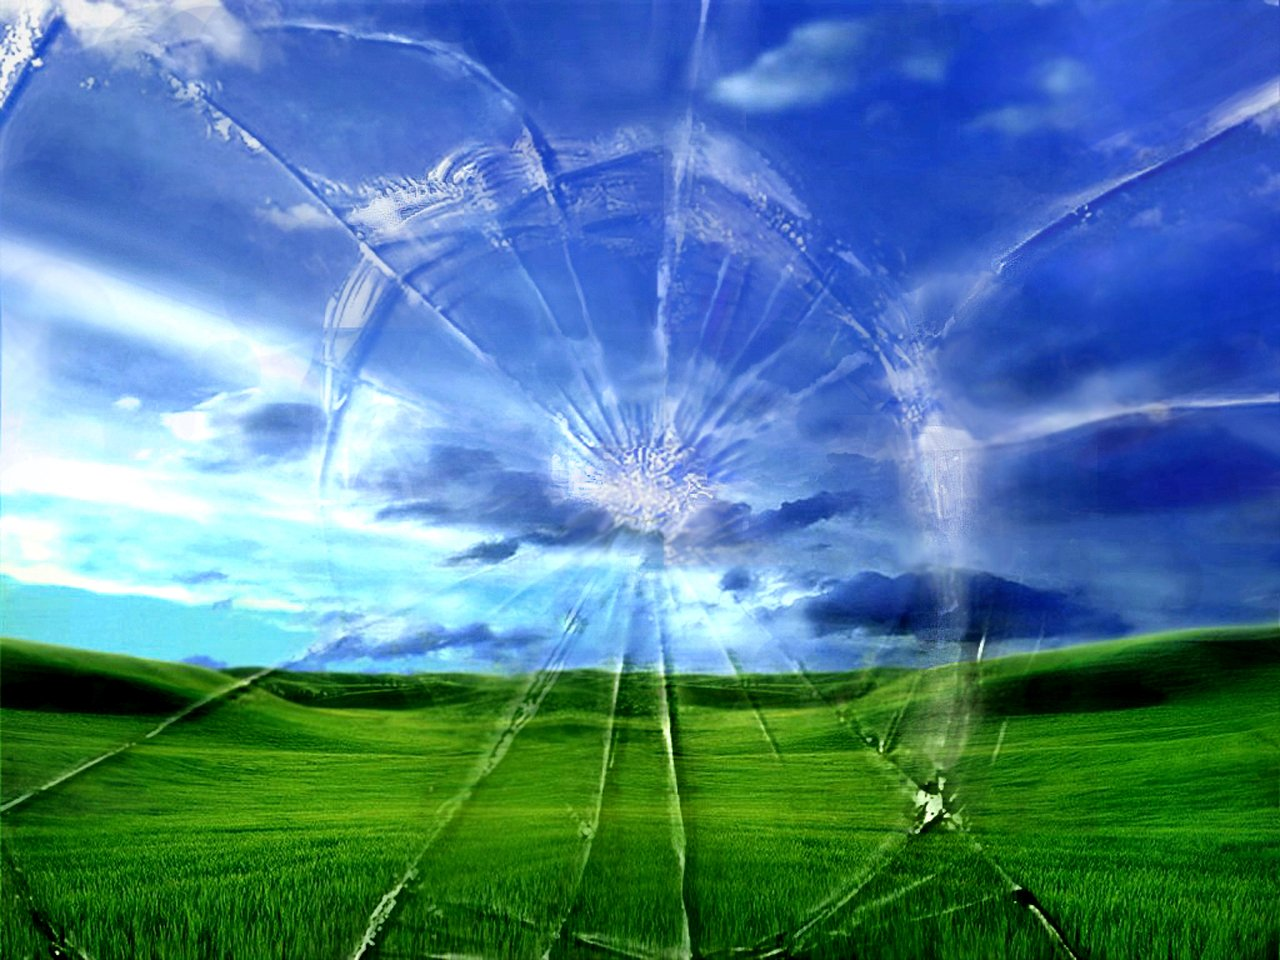 New Wallpaper cracked screen wallpaper 1280x960